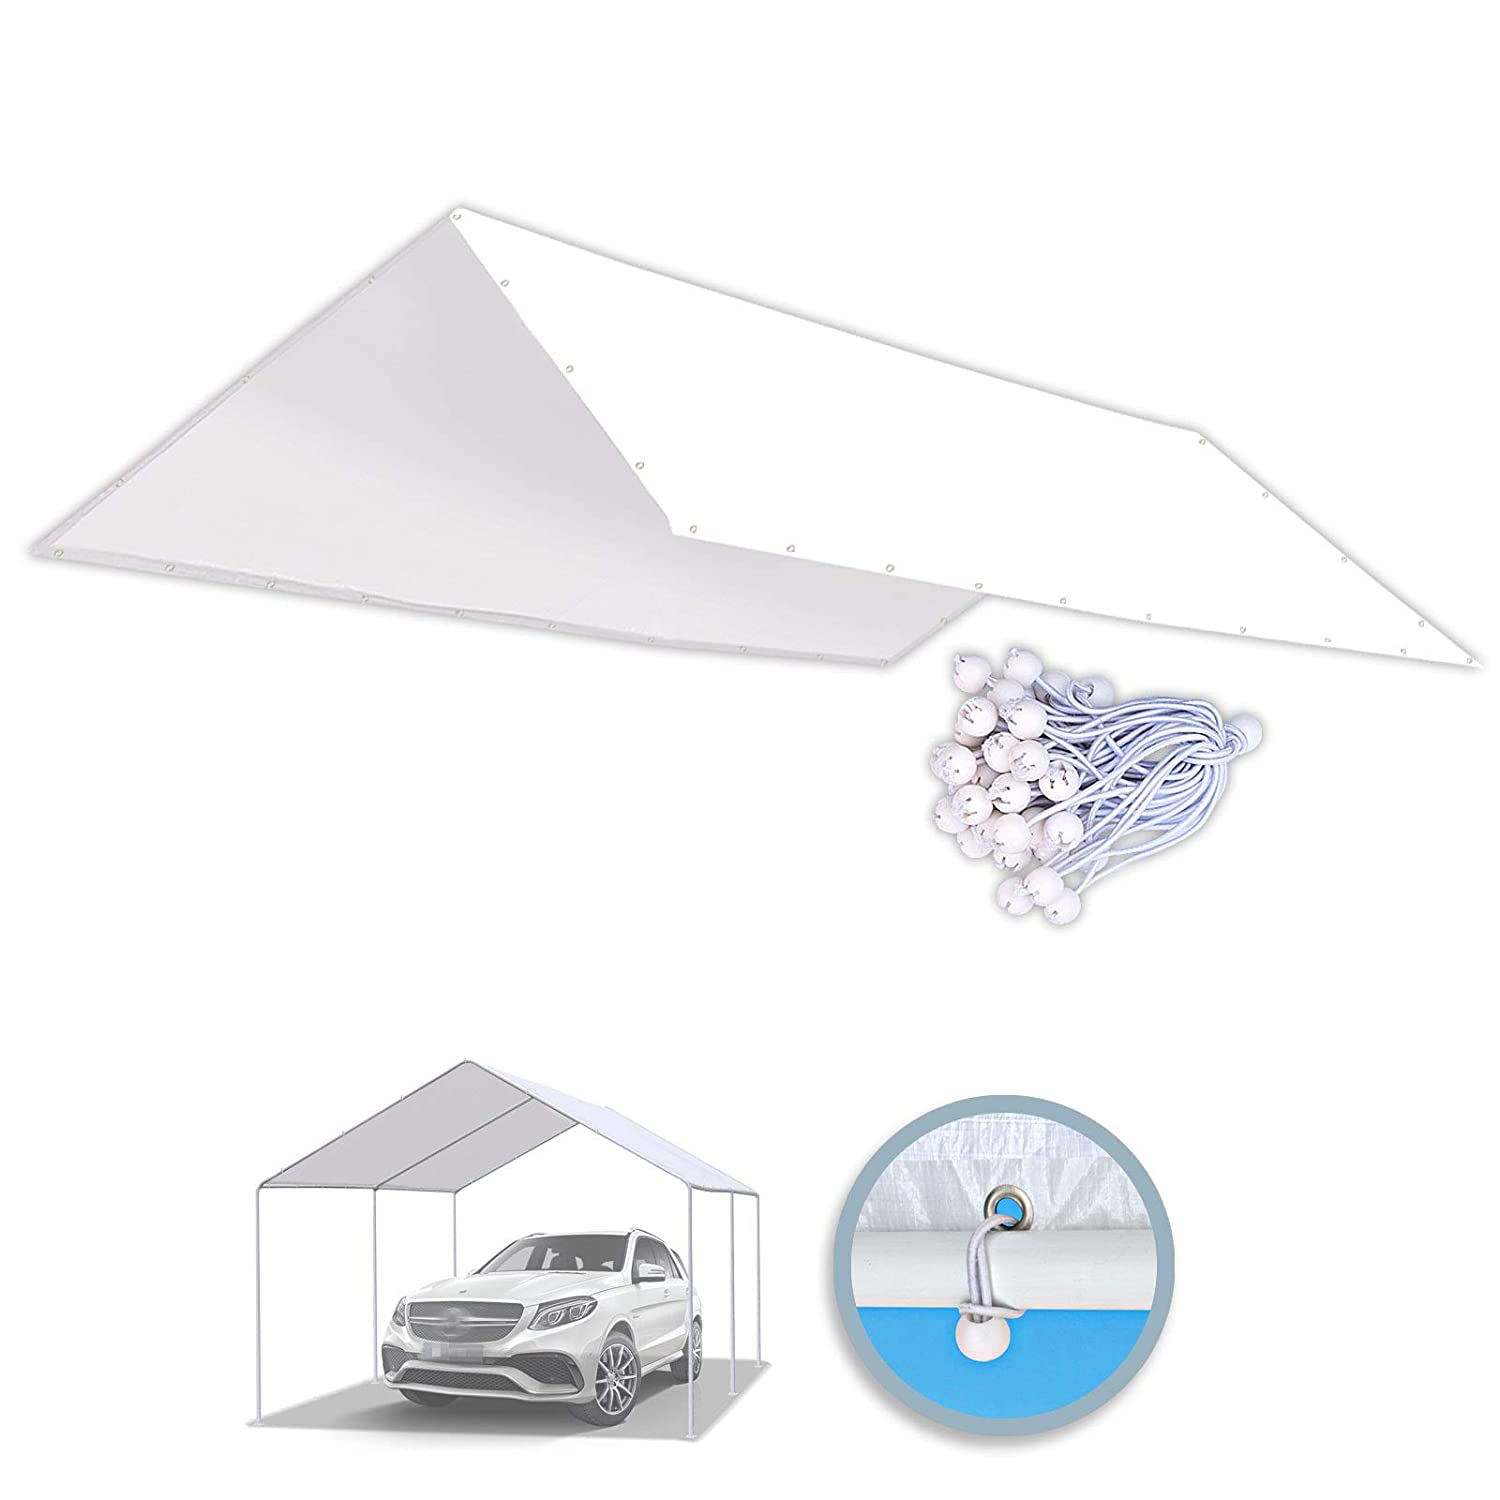 BenefitUSA 10'x20' Carport Replacement Canopy Garage Top Tarp Shelter Cover w Ball Bungees (Cover Only) (with Edge)